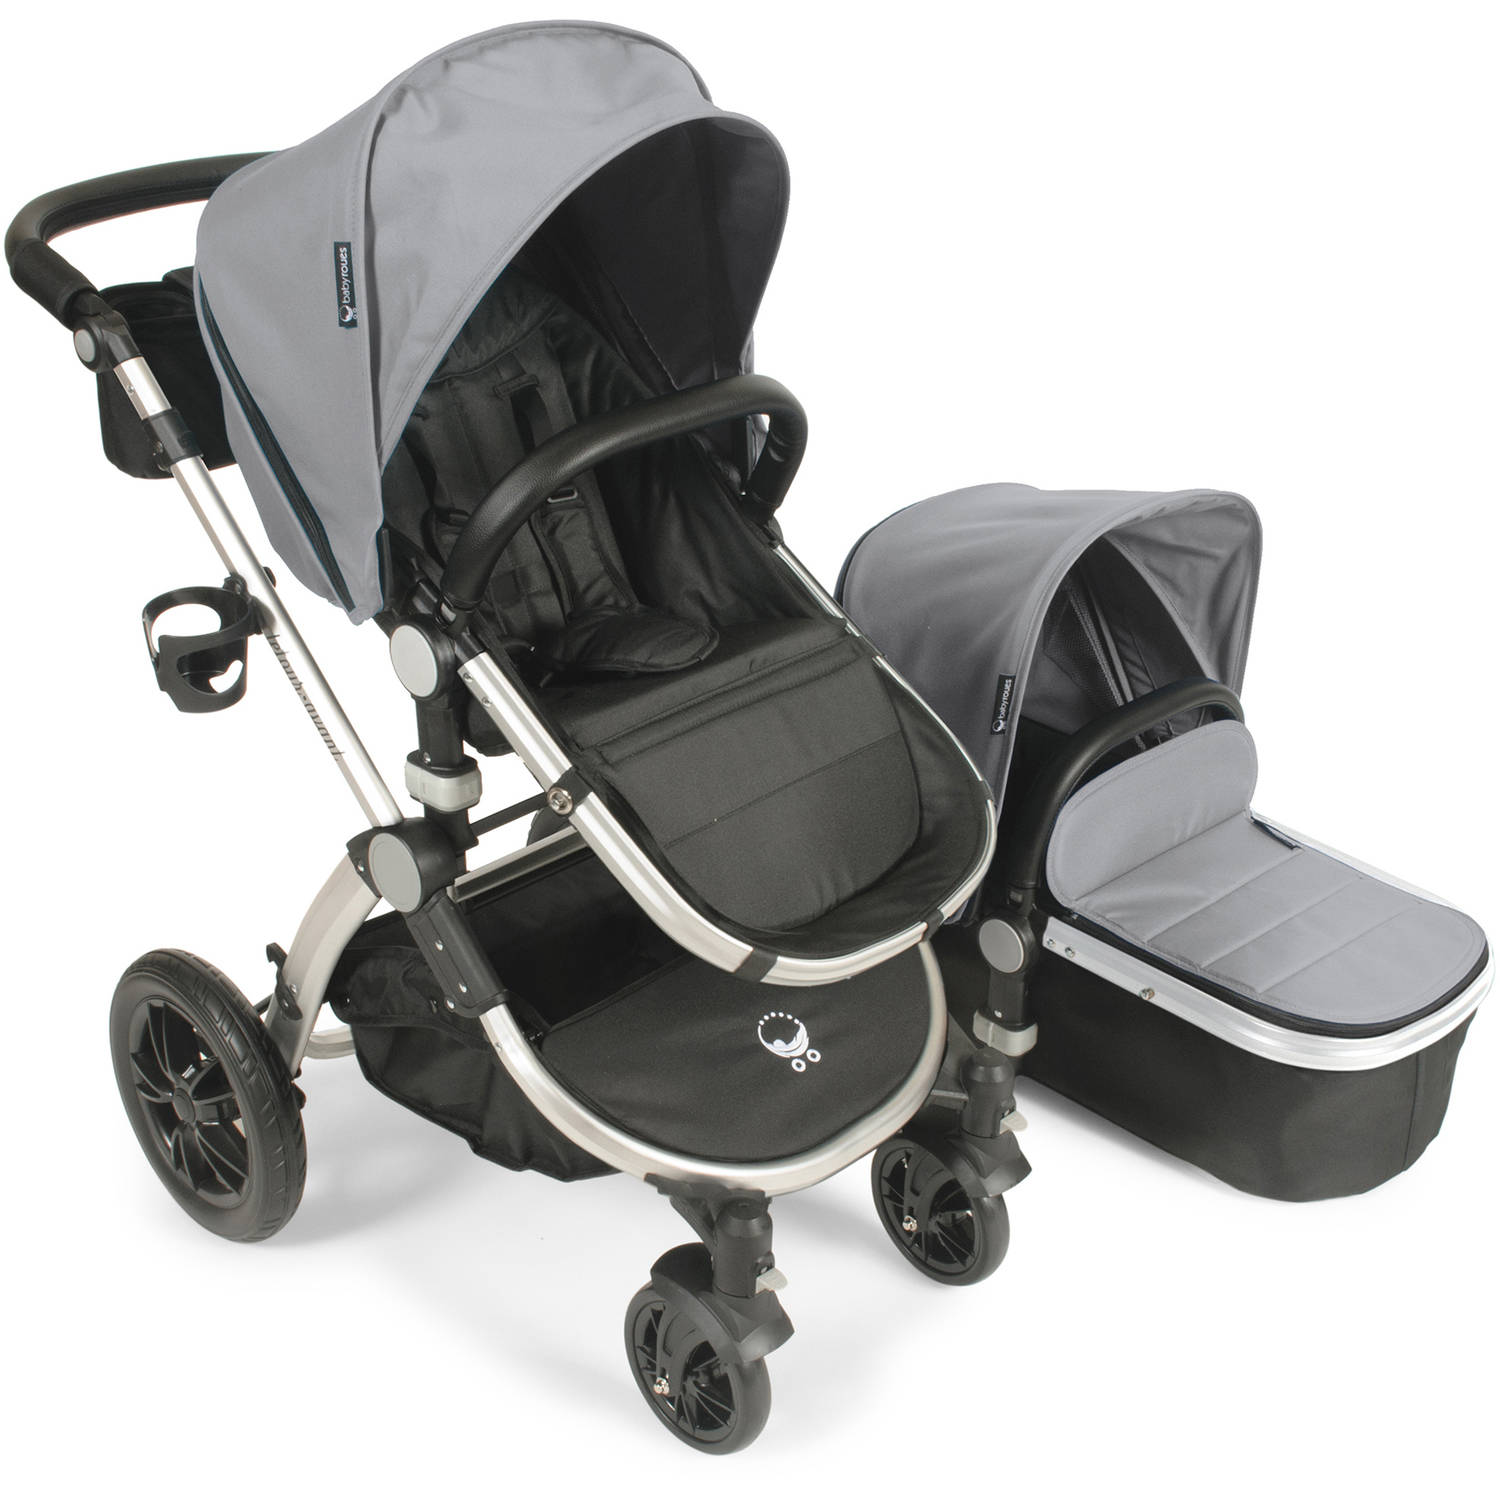 Babyroues Letour Avant Stroller with Bassinet Silver Frame, Silver Fabric